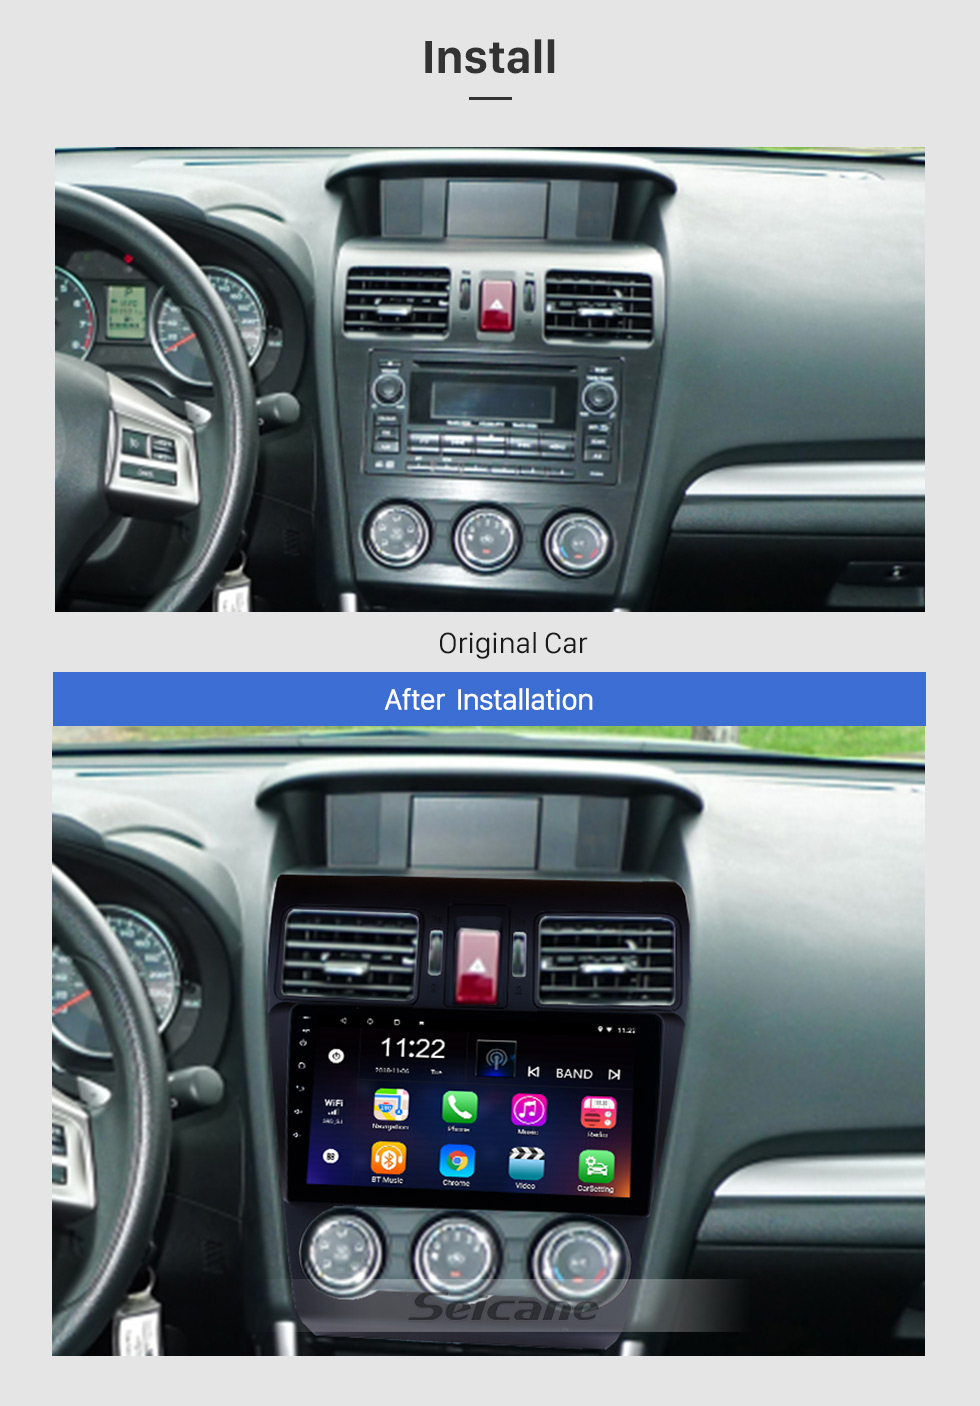 Seicane 9 Inch 1024*600 Touchscreen 2014 2015 2016 Subaru Forester Android 8.1 Radio GPS Navigation System Bluetooth Rearview camera 3G WIFI Mirror link Steering Wheel Control